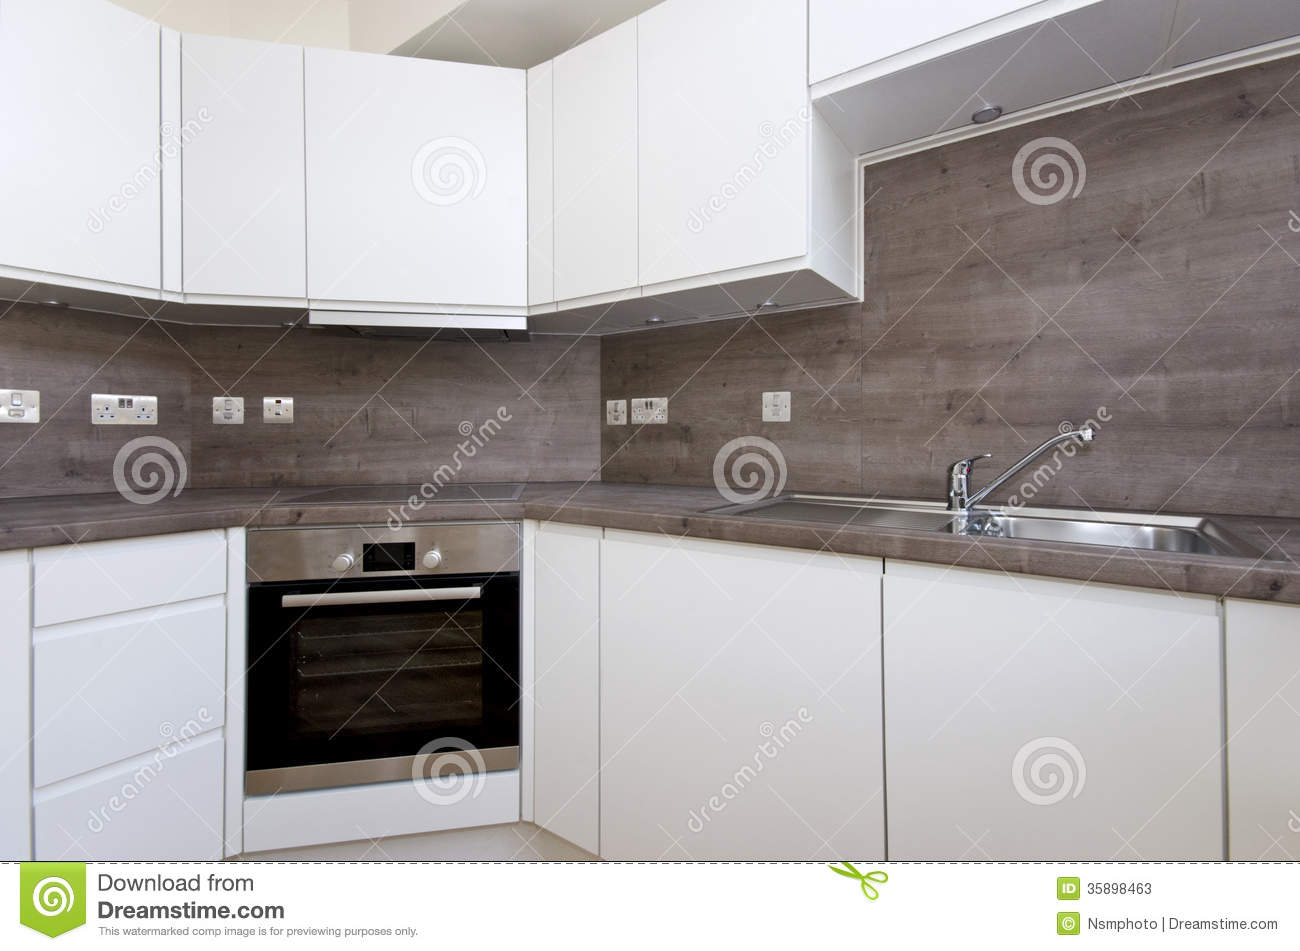 Kitchen Appliances Blogs Contemporary Kitchen With Natural Stone Worktop And Tiles